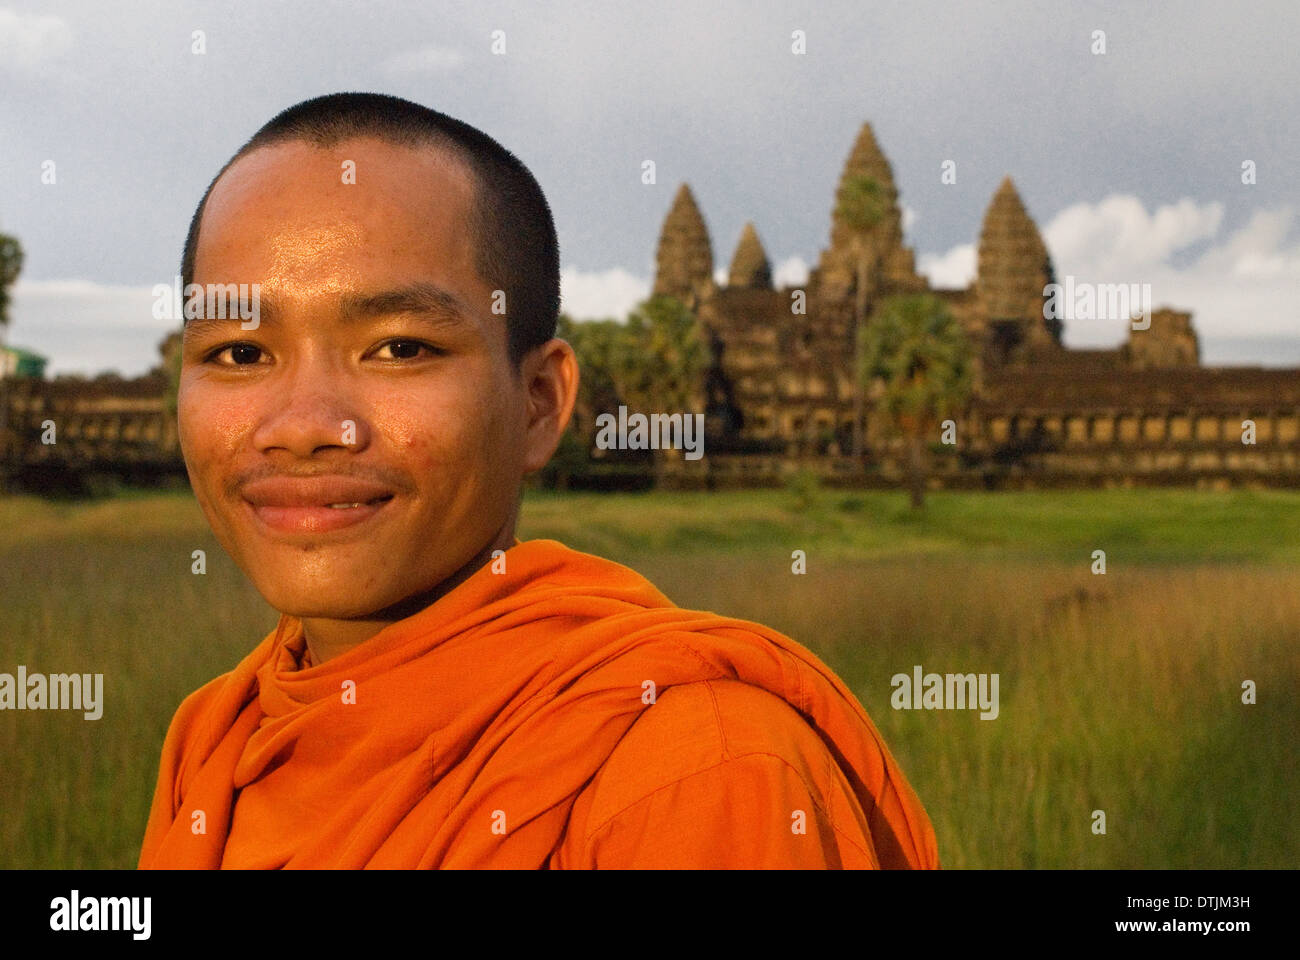 Buddhist monk on the outside of the Temple of Angkor Wat. Angkor Wat, the largest monument of the Angkor group and the best pres - Stock Image